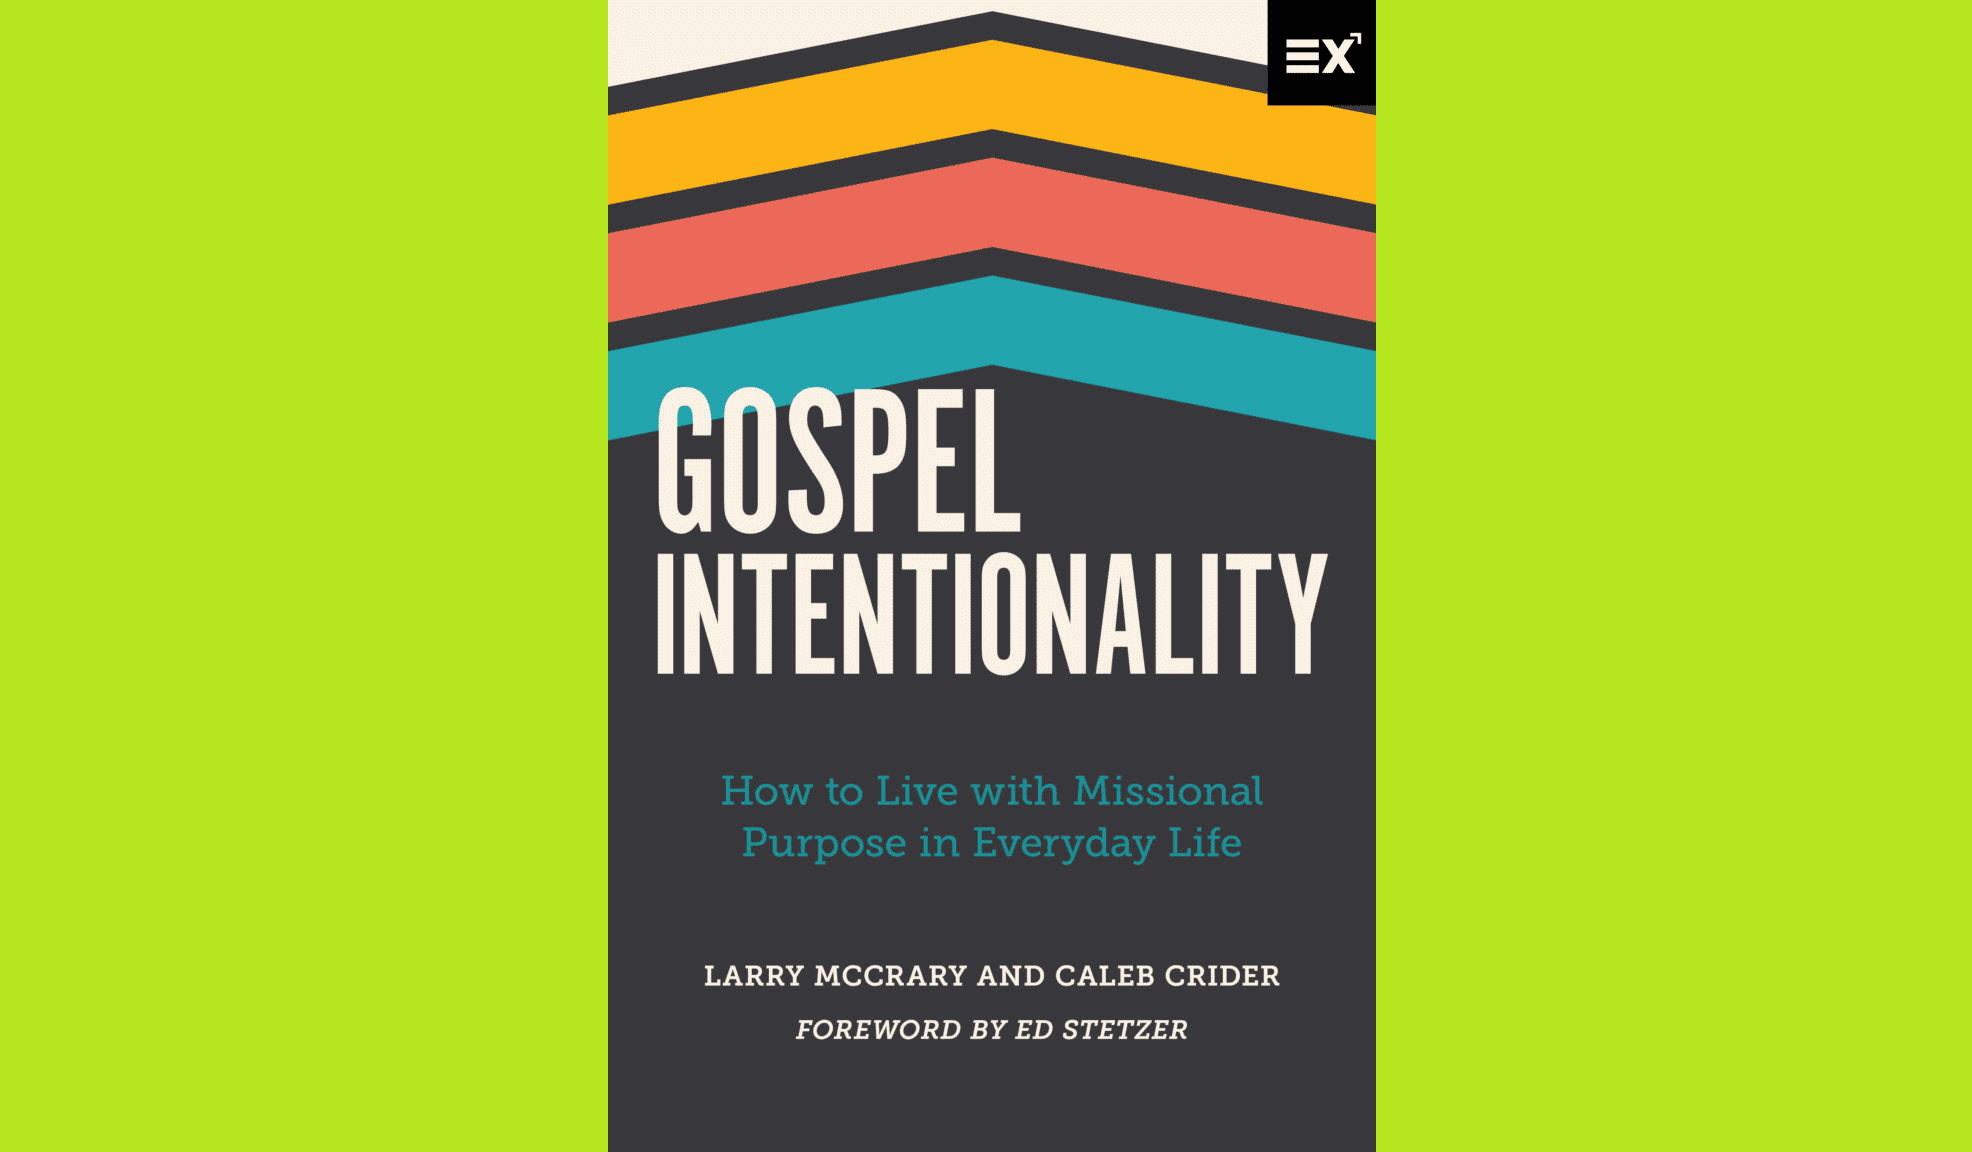 Gospel Intentionality